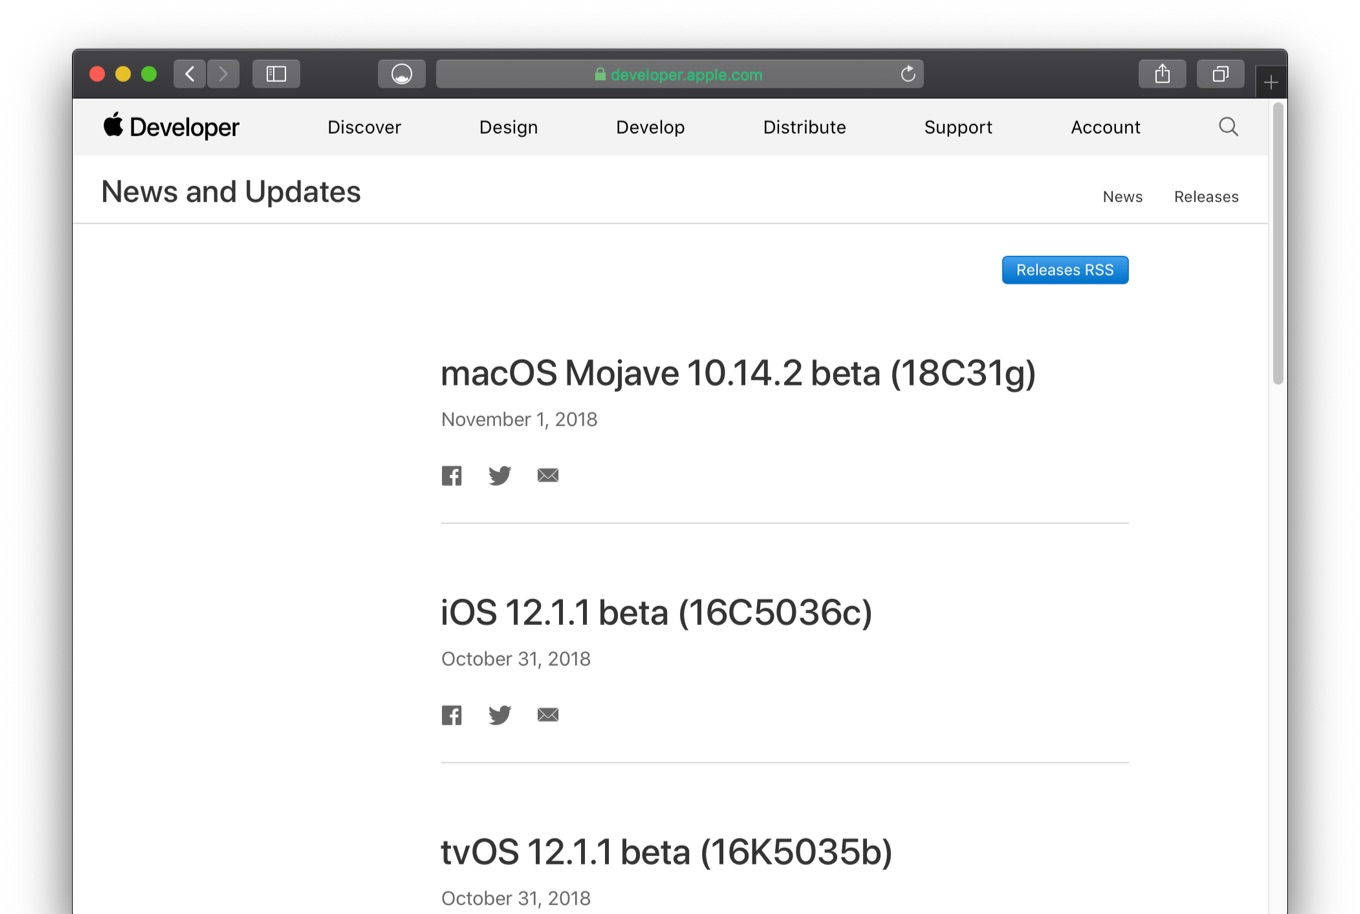 macOS 10.14.2 Mojave beta 1 Build 18C31g